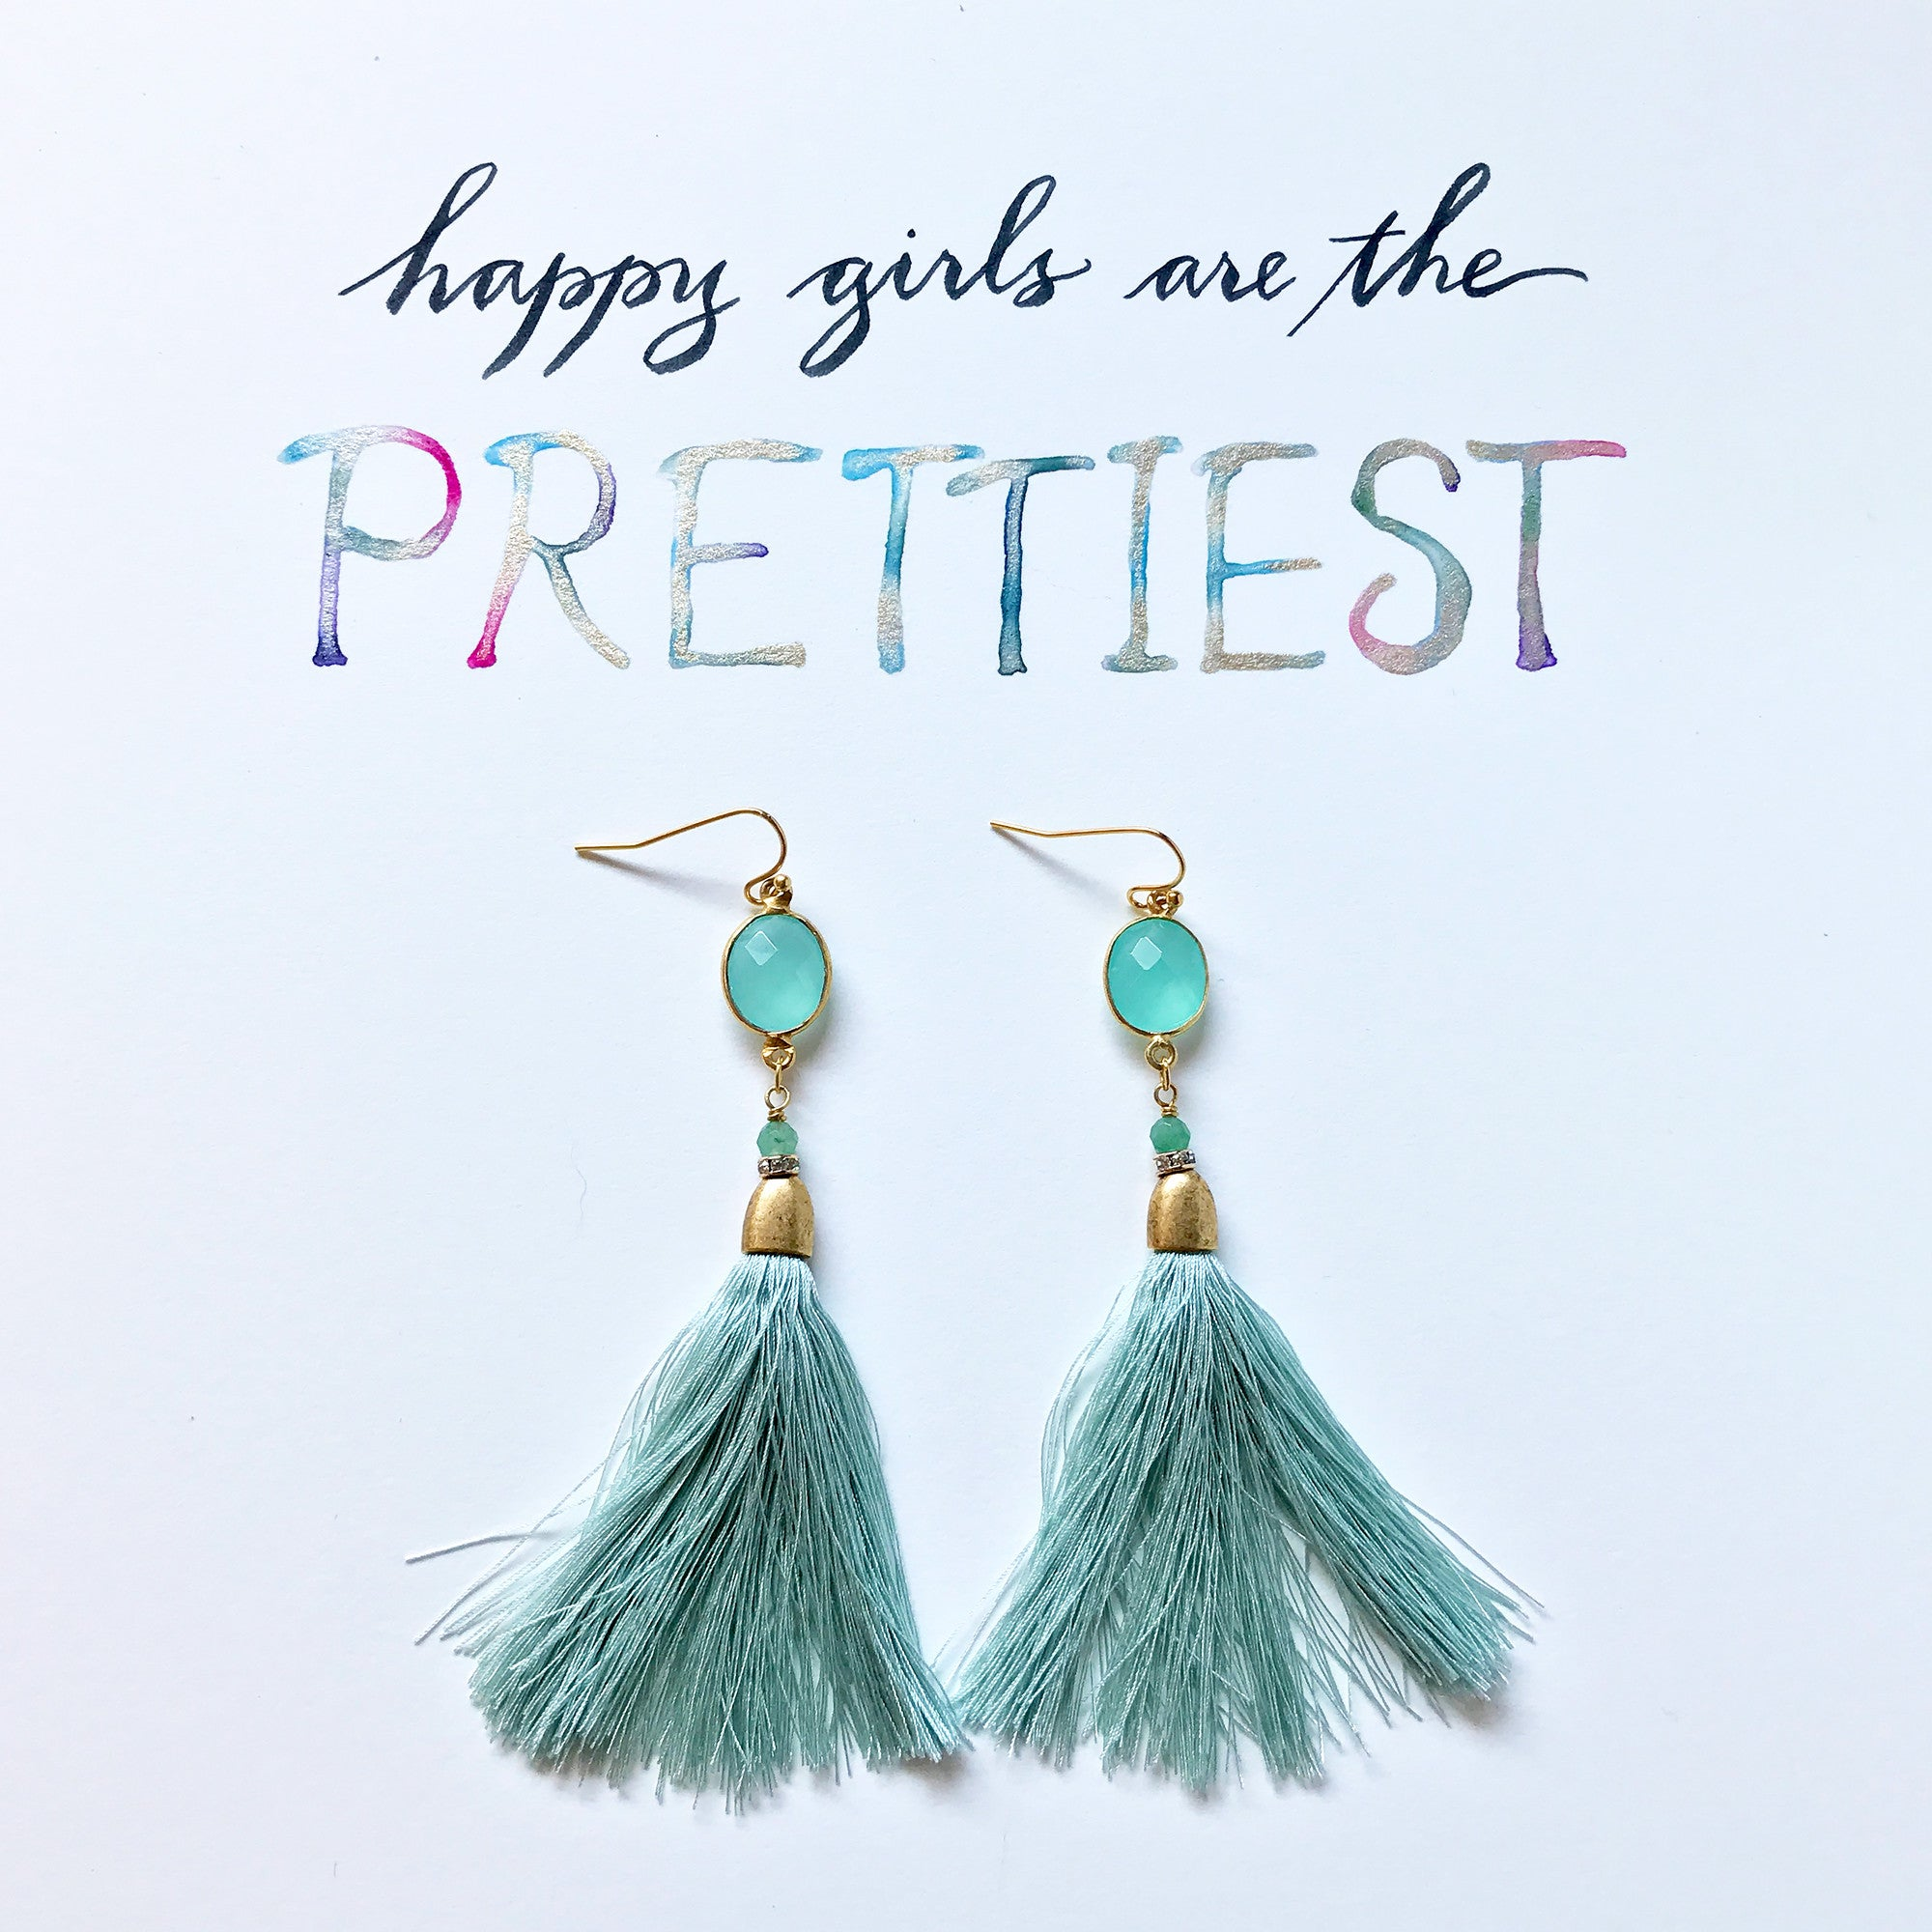 #SequinSayings - Happy Girls are the Prettiest